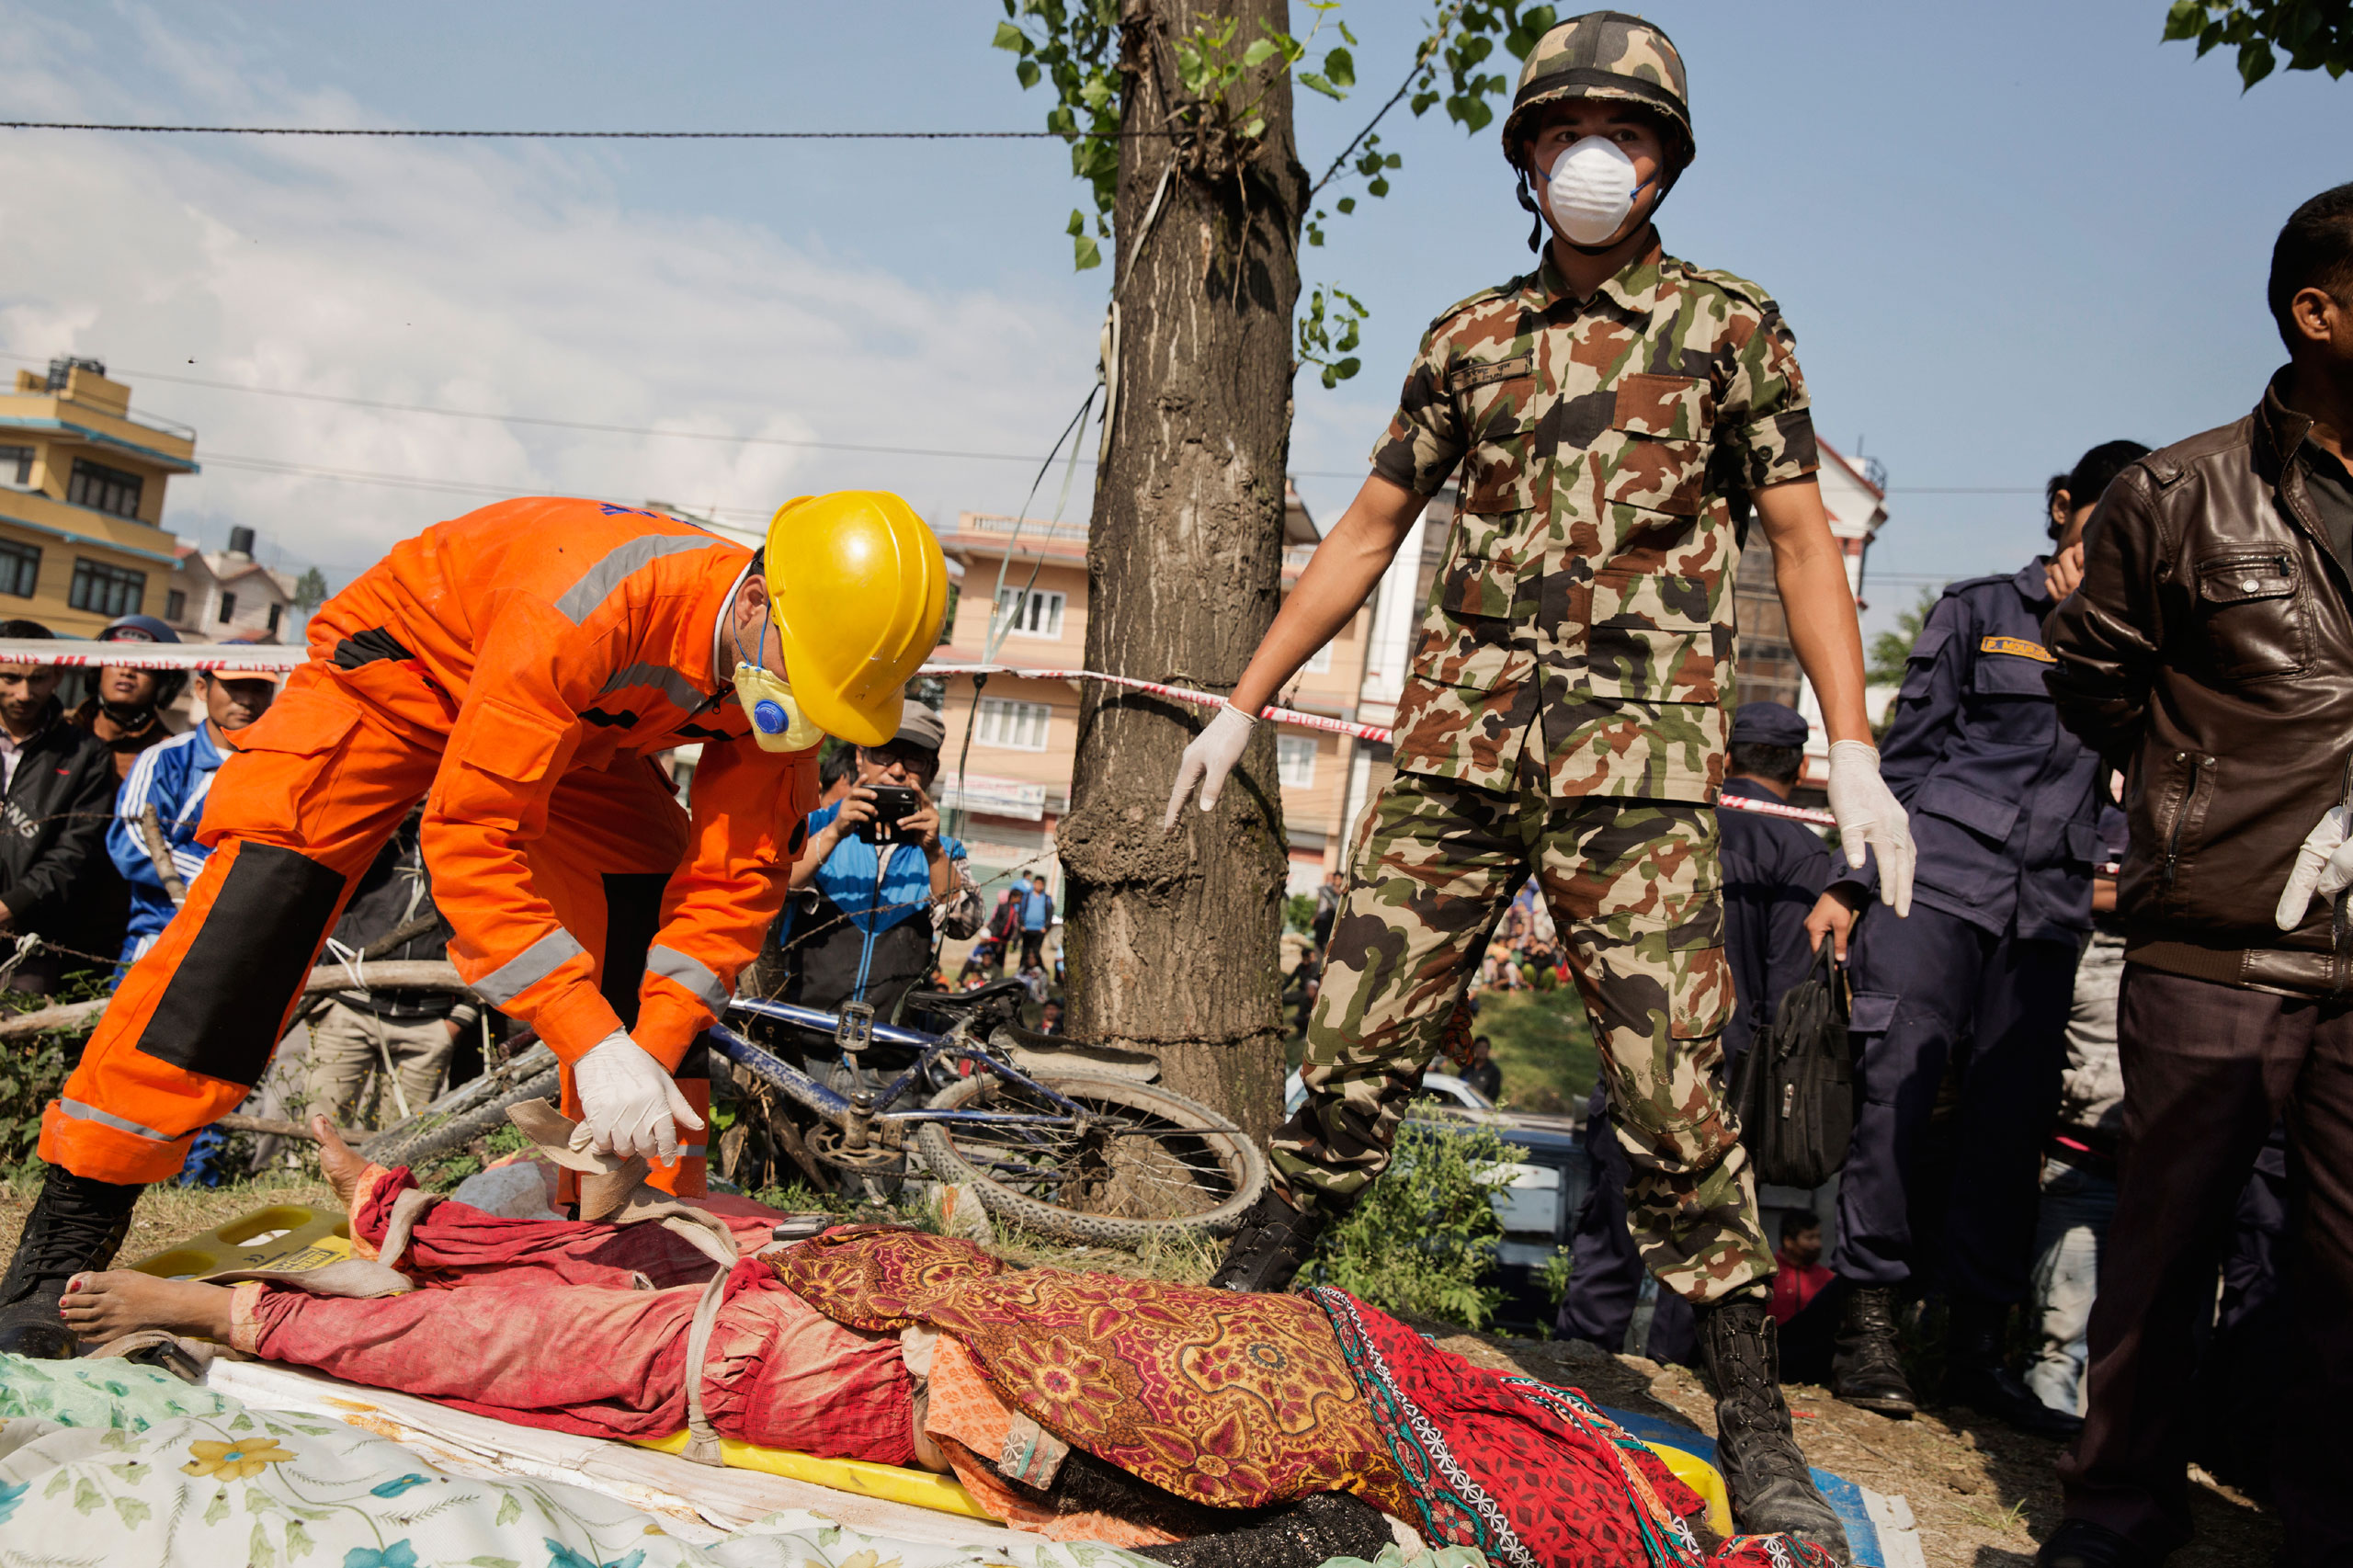 Indian and Nepalese forces attempt to identify a body after it was recovered from a collapsed restaurant in Kathmandu, April 27, 2015.